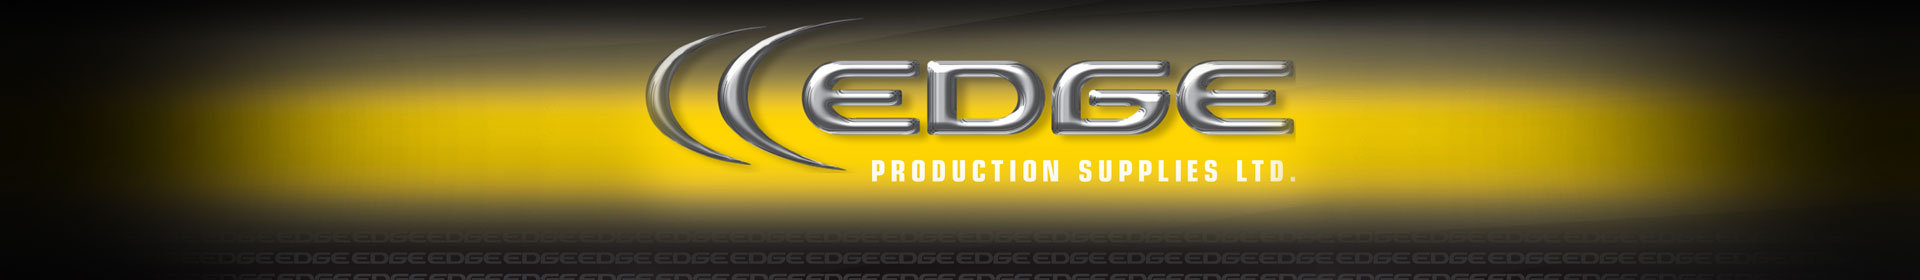 EDGE-BACKGROUND-2.jpg